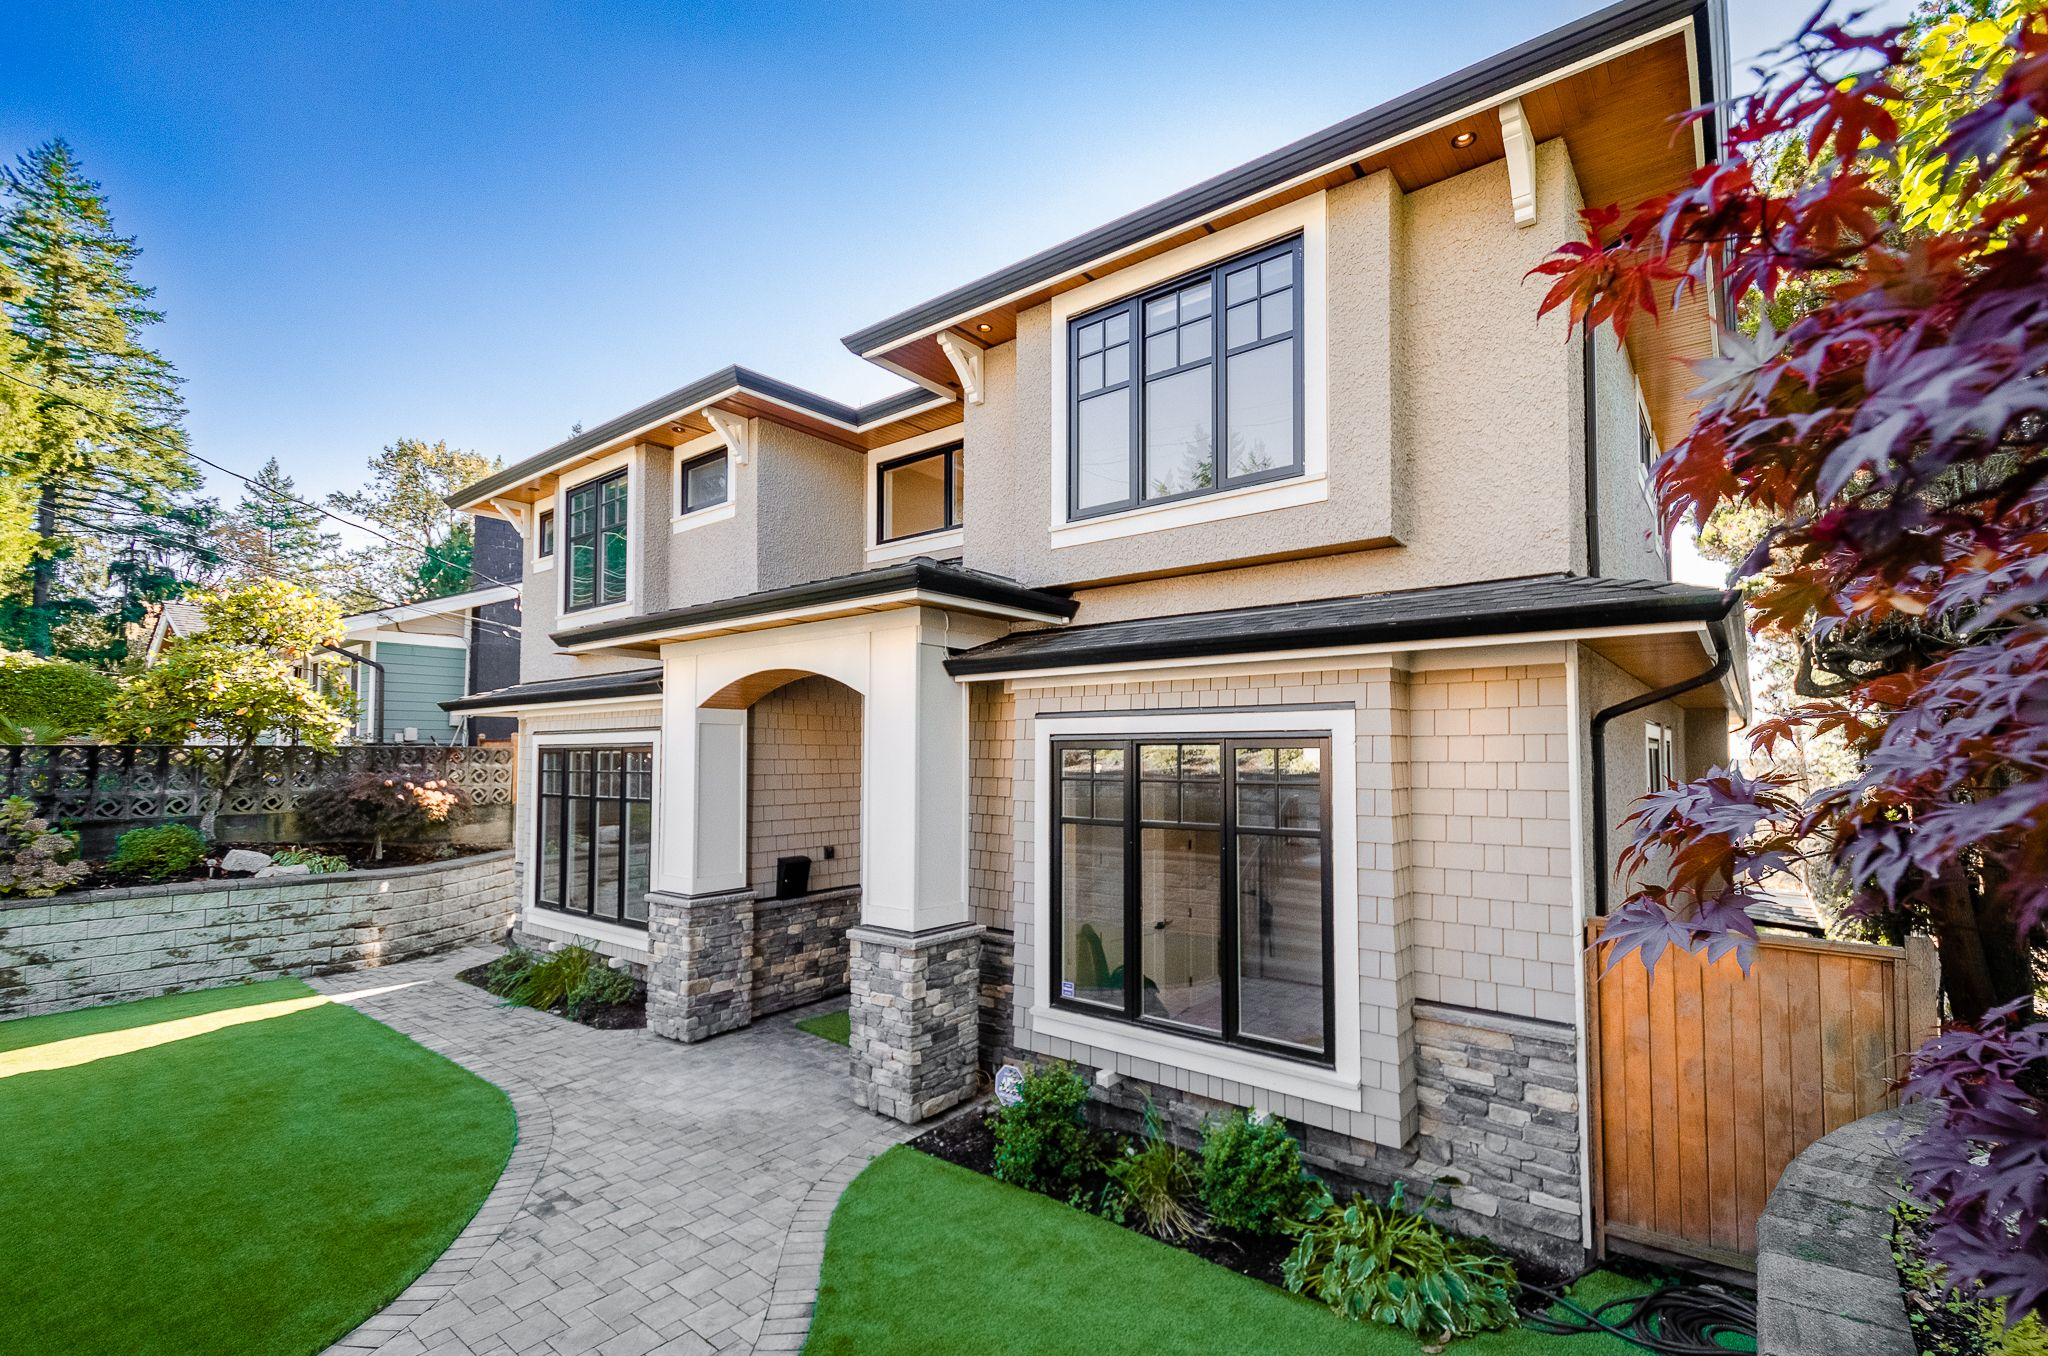 Main Photo: 4638 Carson Street in Burnaby: South Slope House for sale (Burnaby South)